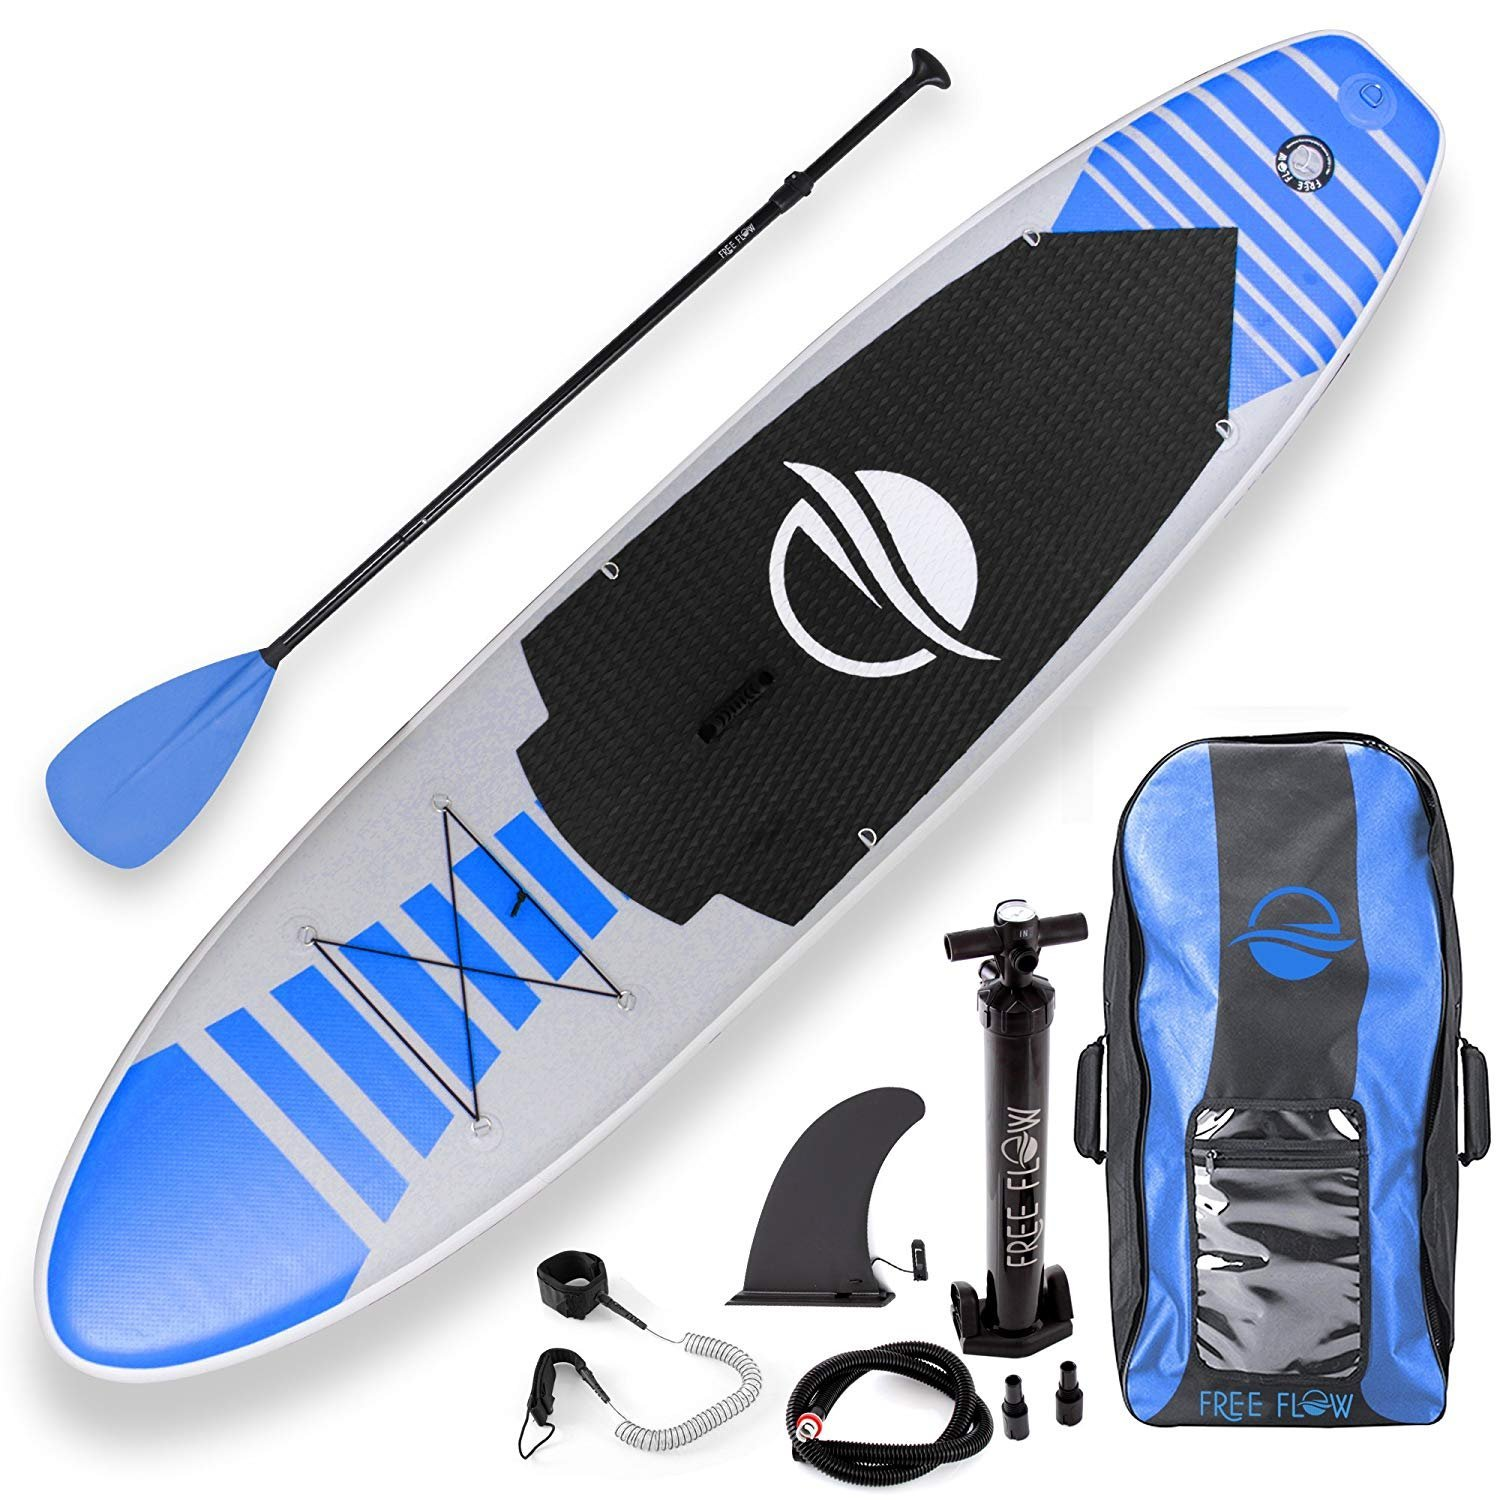 Serenelife Free Flow Inflatable SUP Blue